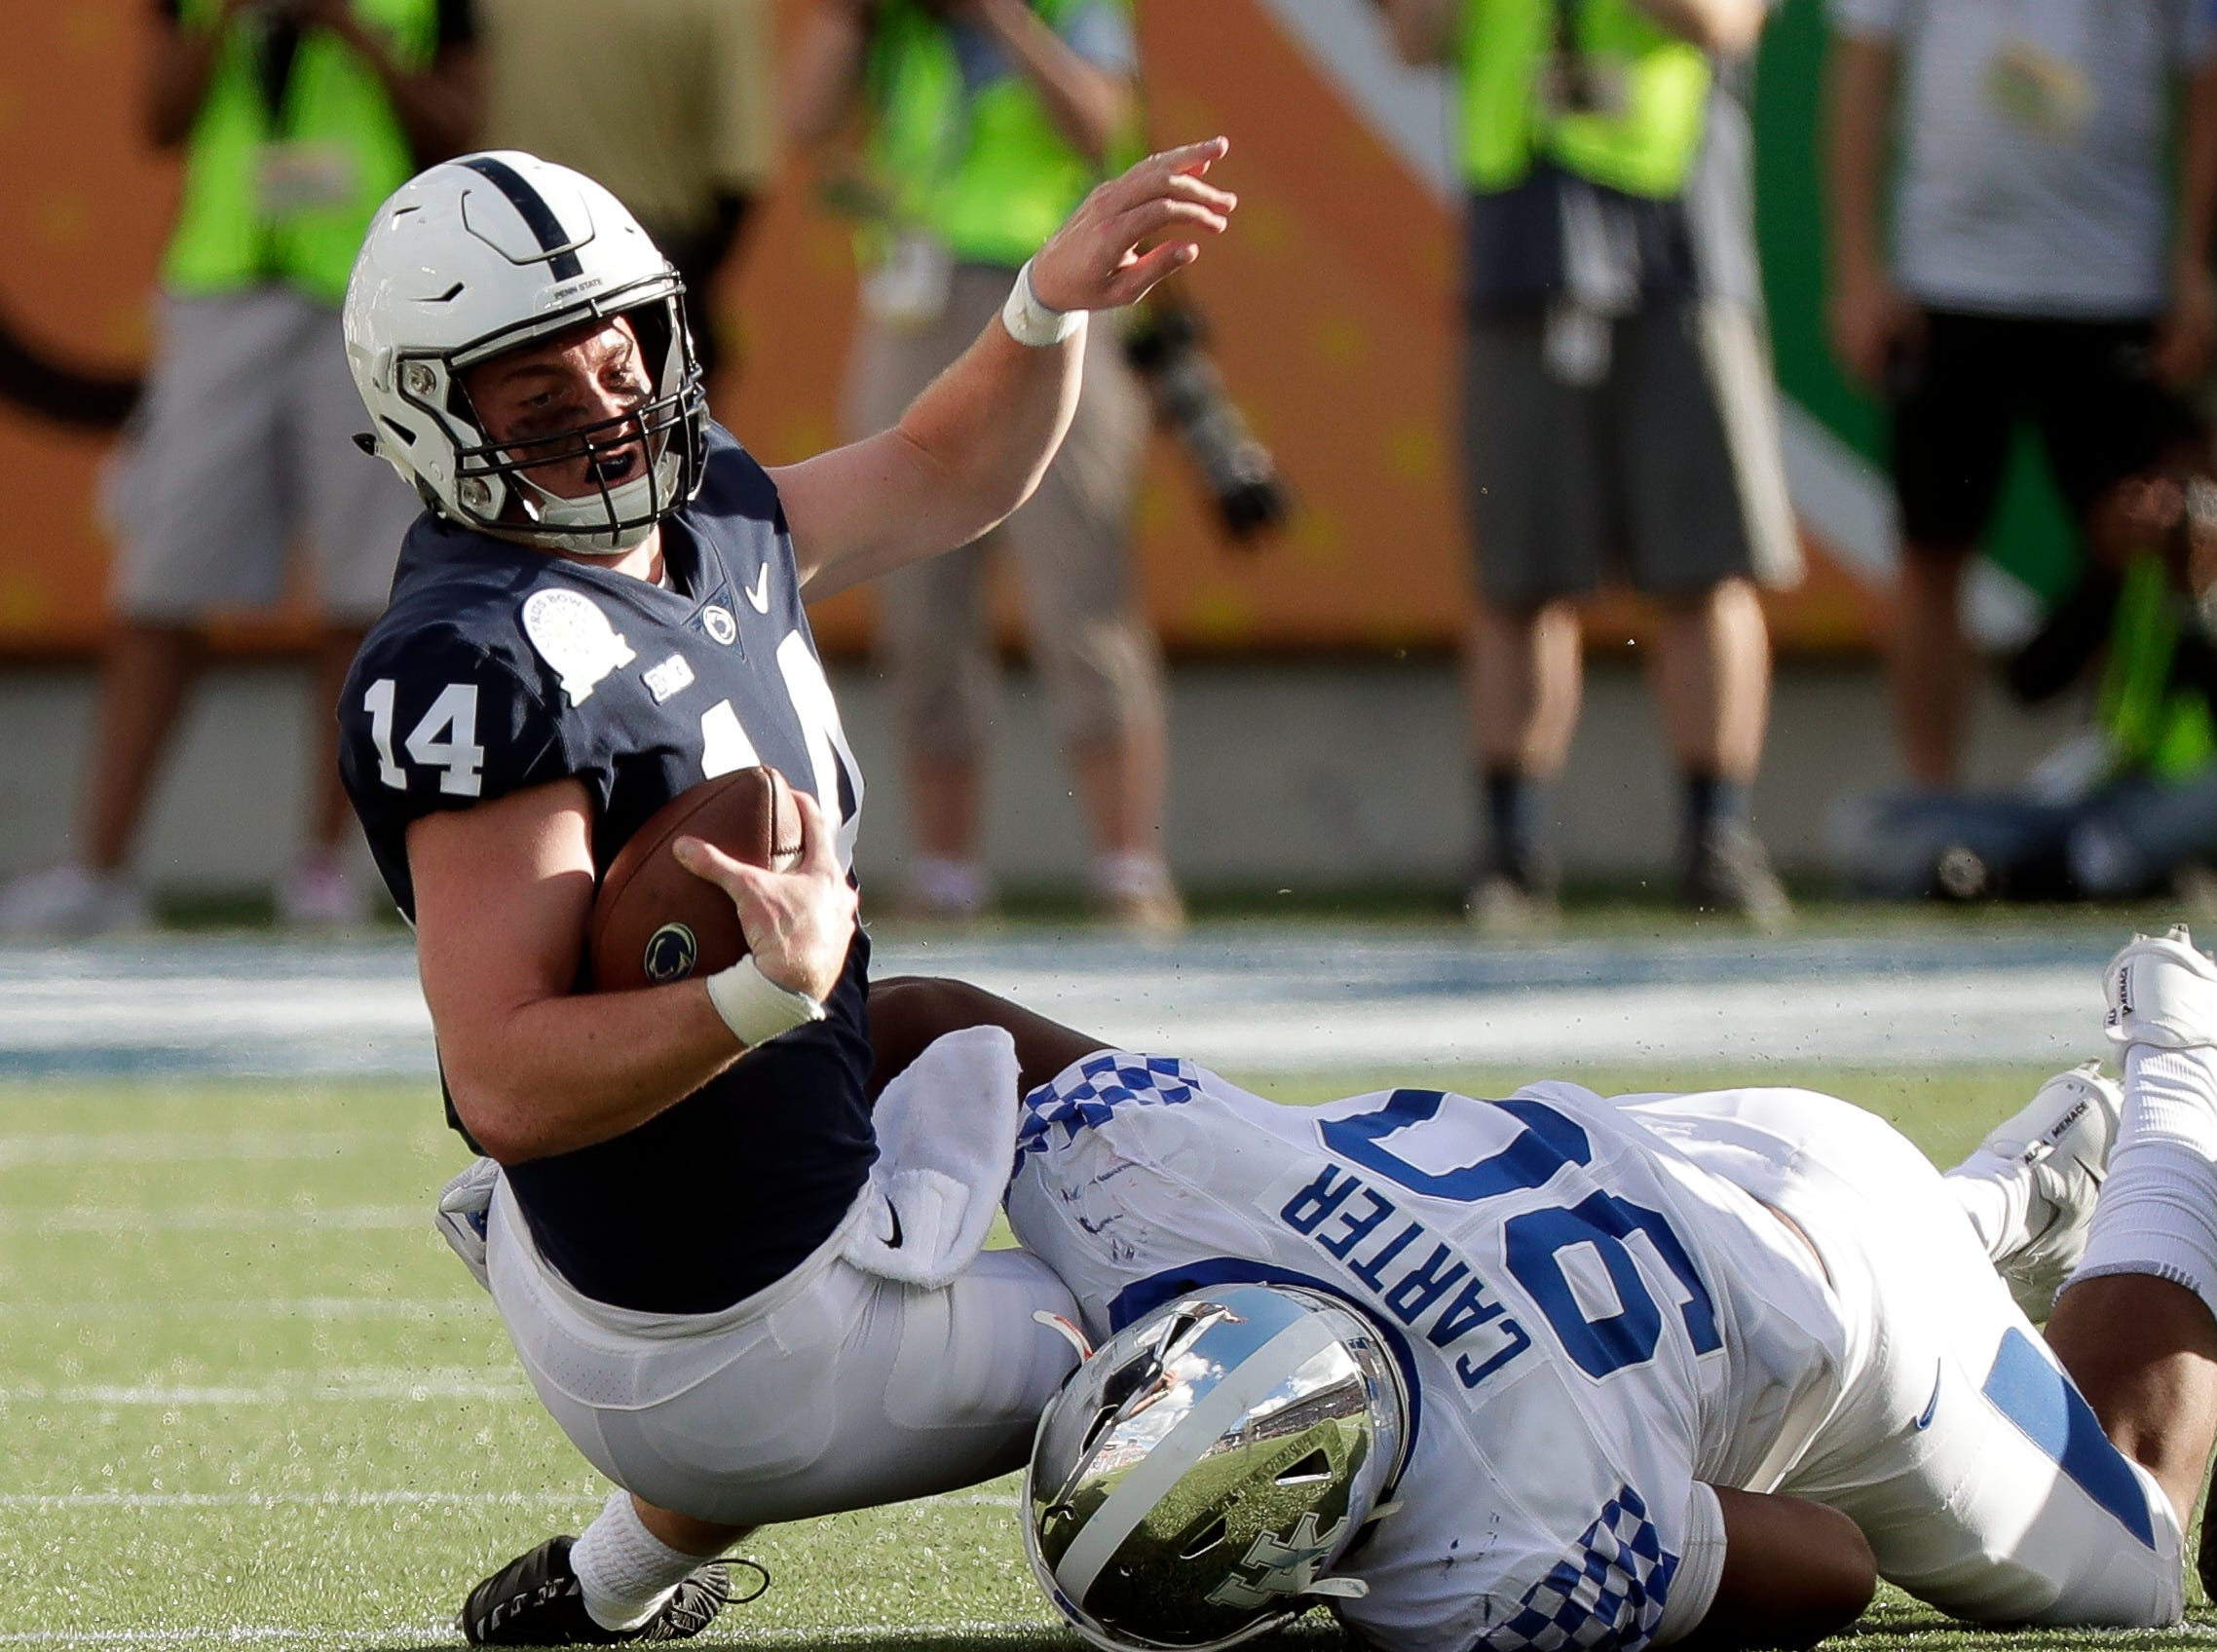 Kentucky defensive end T.J. Carter (90) sacks Penn State quarterback Sean Clifford (14) during the second half of the Citrus Bowl NCAA college football game, Tuesday, Jan. 1, 2019, in Orlando, Fla. (AP Photo/John Raoux)